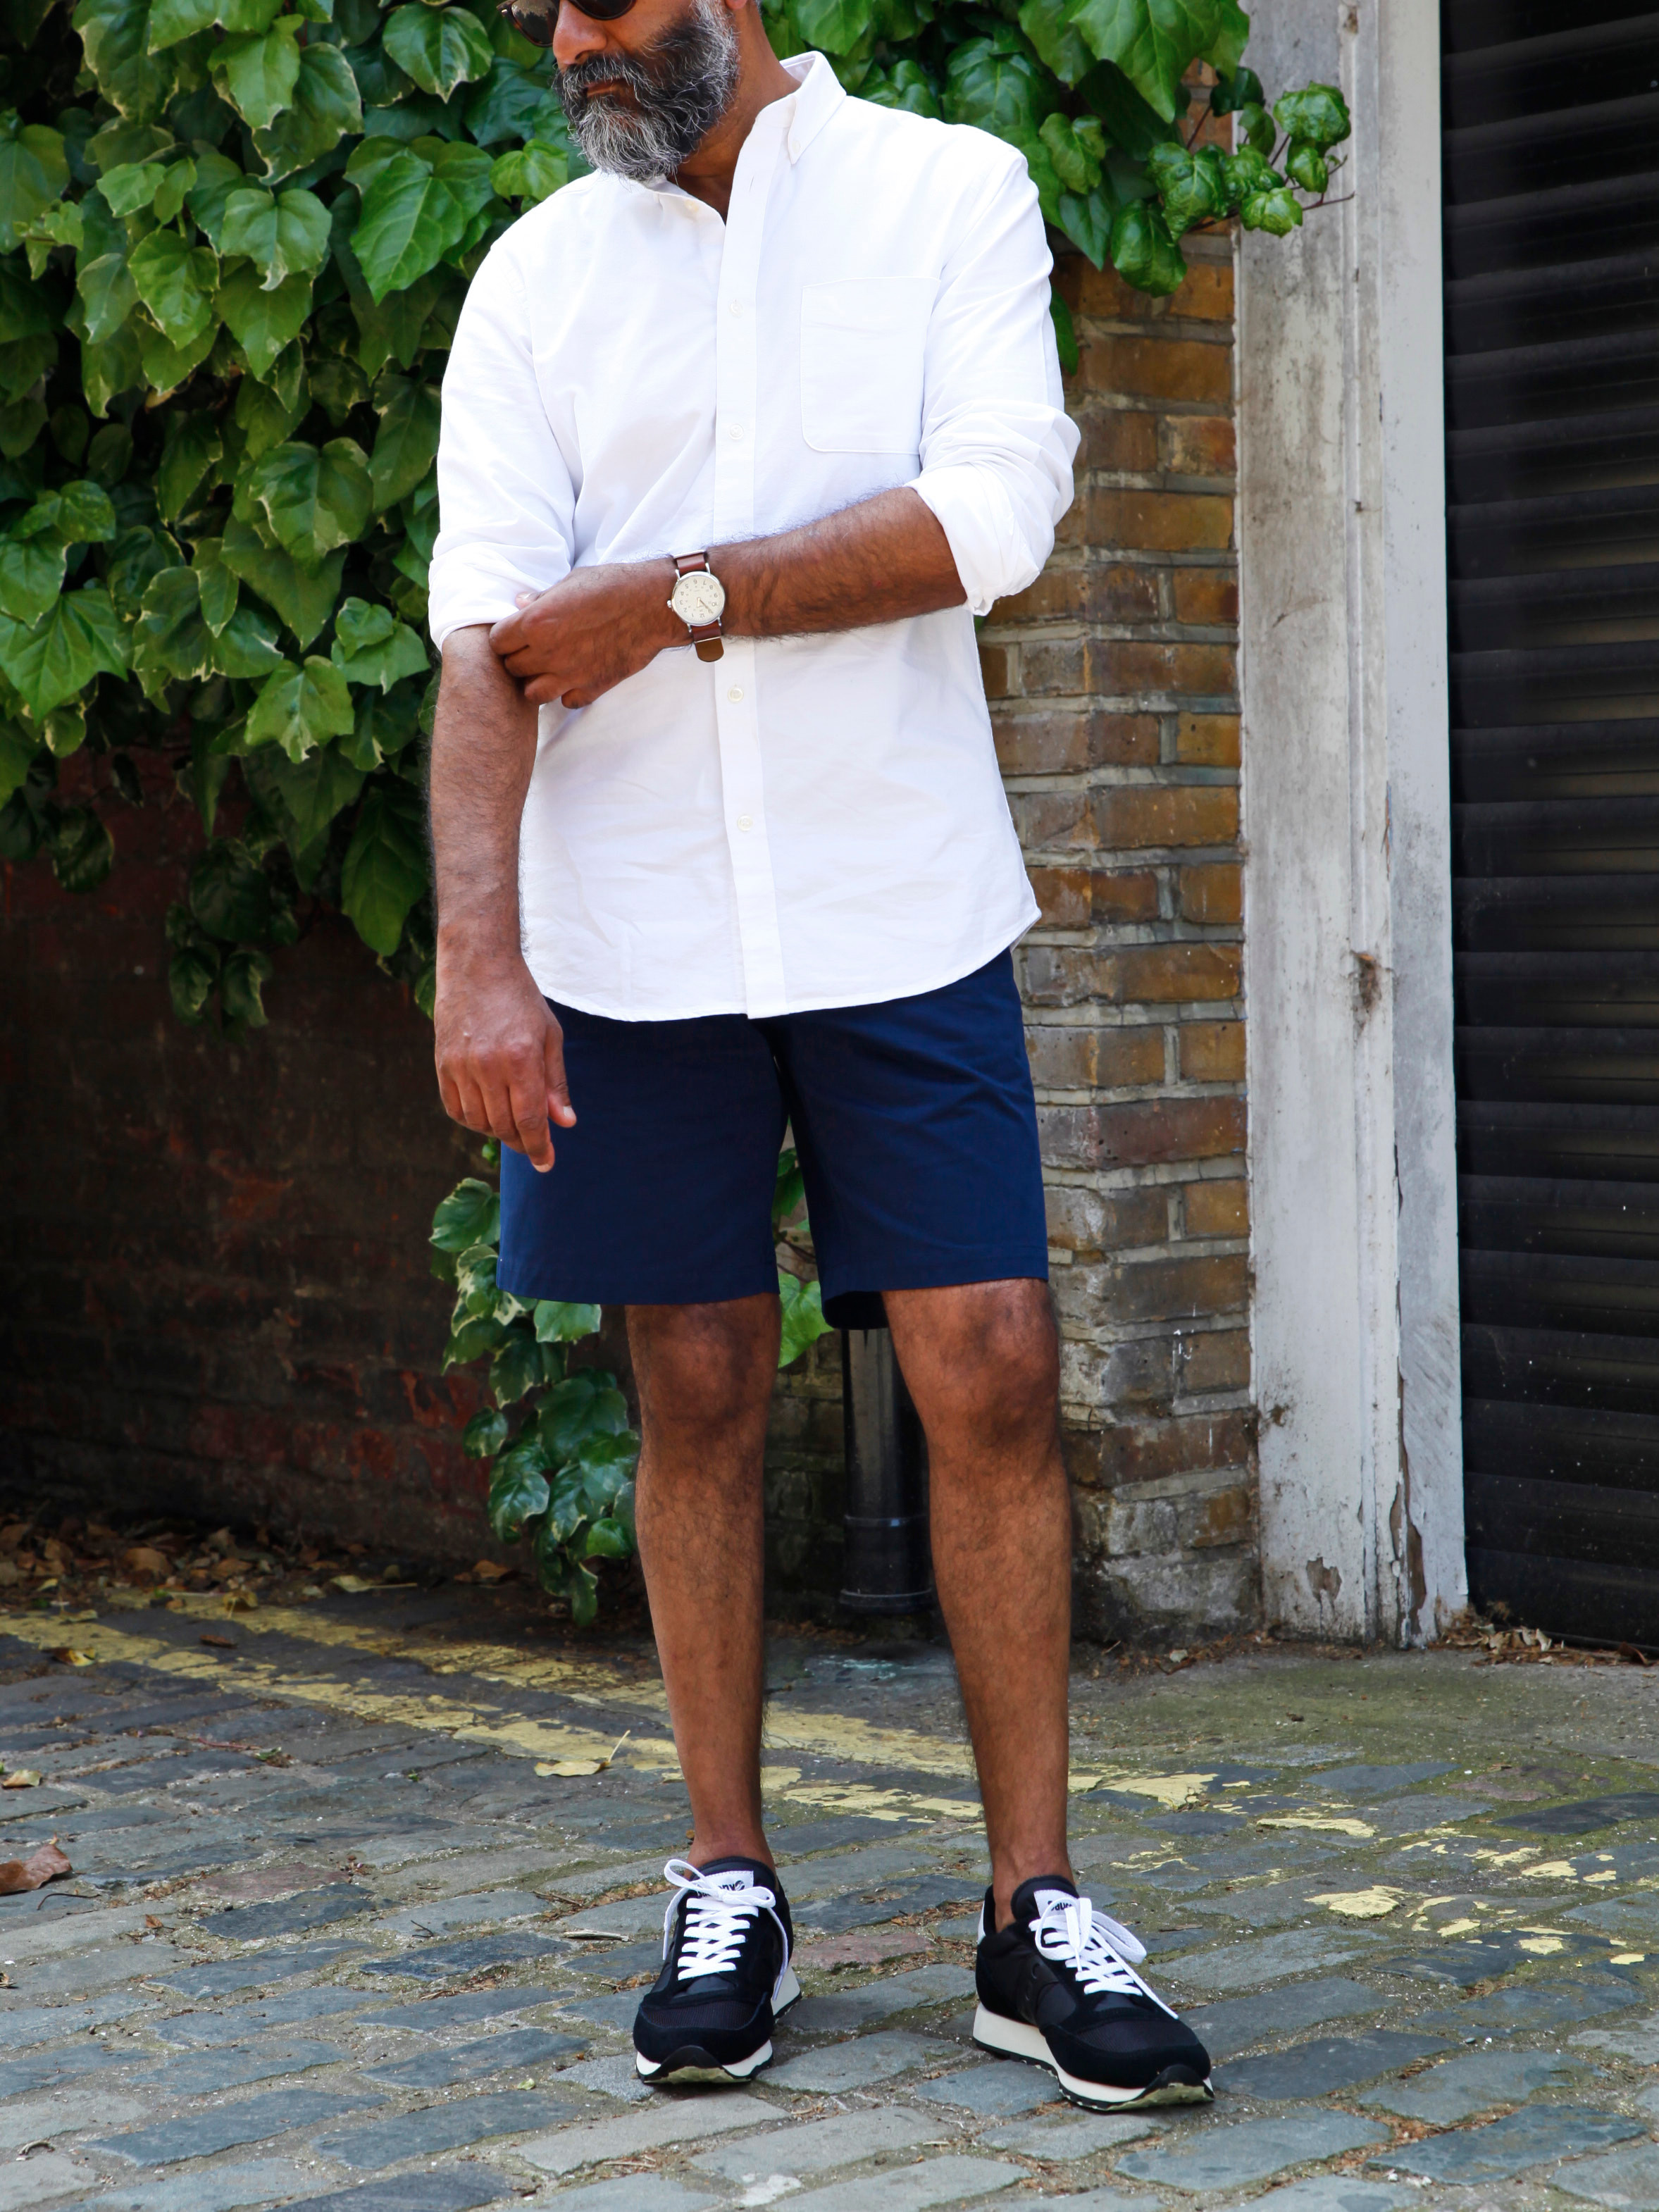 Men's outfit idea for 2021 with white casual shirt, navy shorts, leather strap watch, neutral trainers. Suitable for spring and summer.